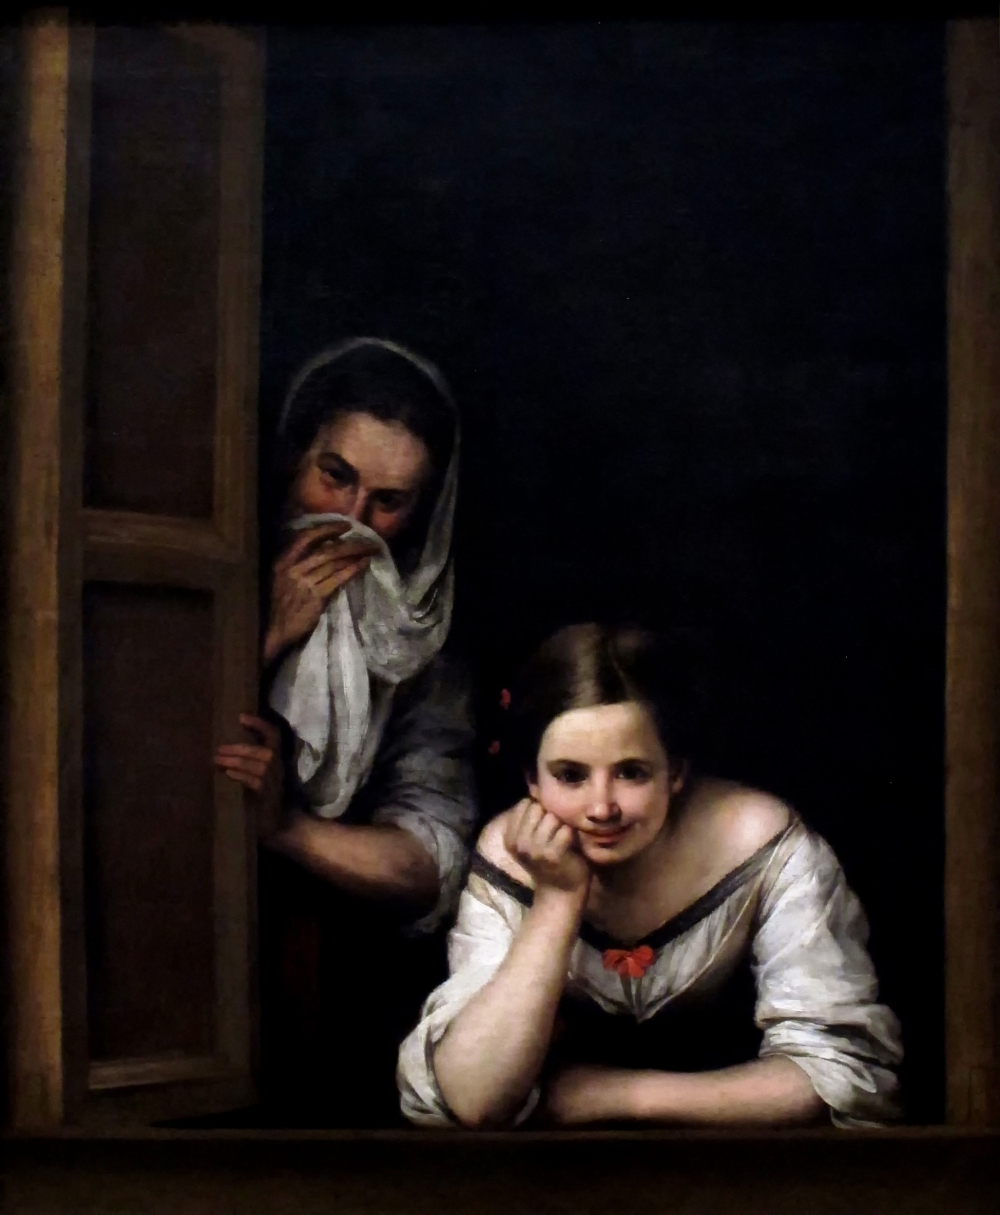 Bartolomé Esteban Murillo. Mujeres en la ventana. 1665-1675. National Gallery. Washington.